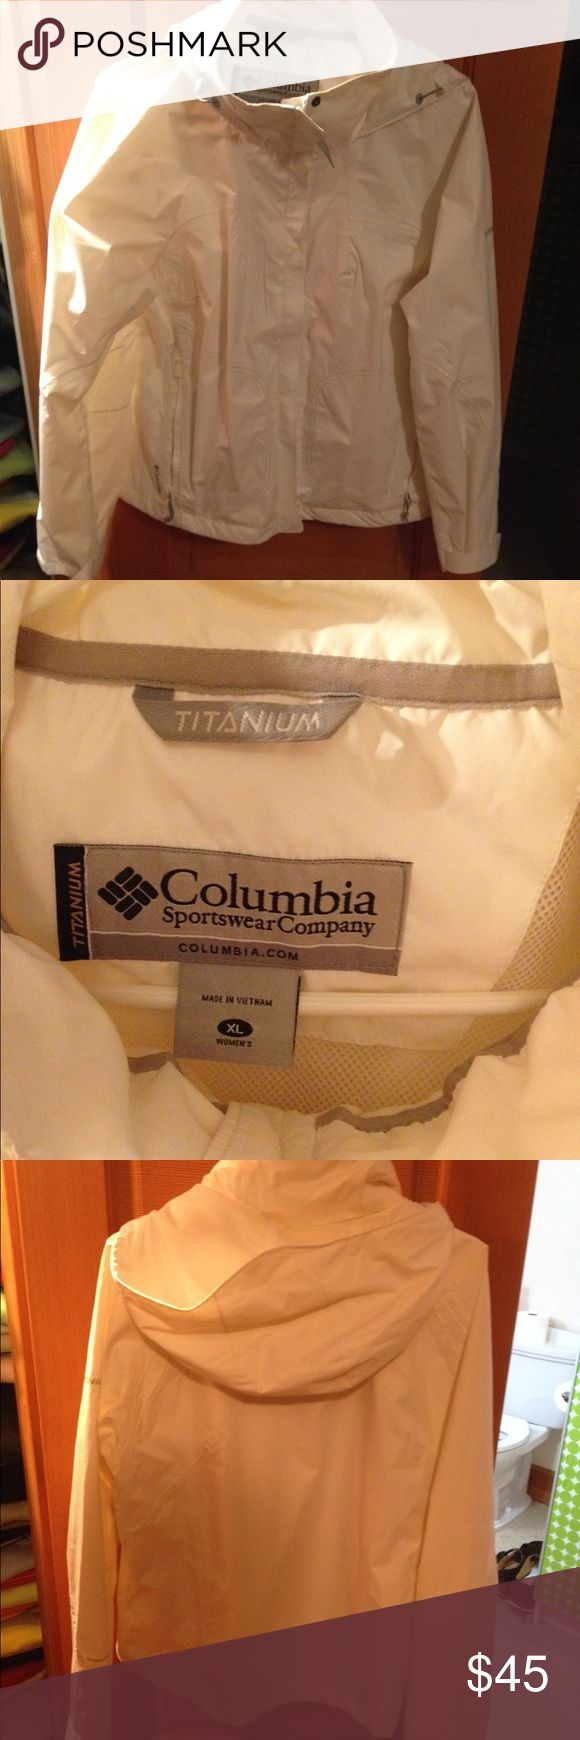 Columbia sportswear titanium waterproof jacket Women's waterproof jacket. Has a hood or you can roll it up and store under collar columbia sportswear Jackets & Coats